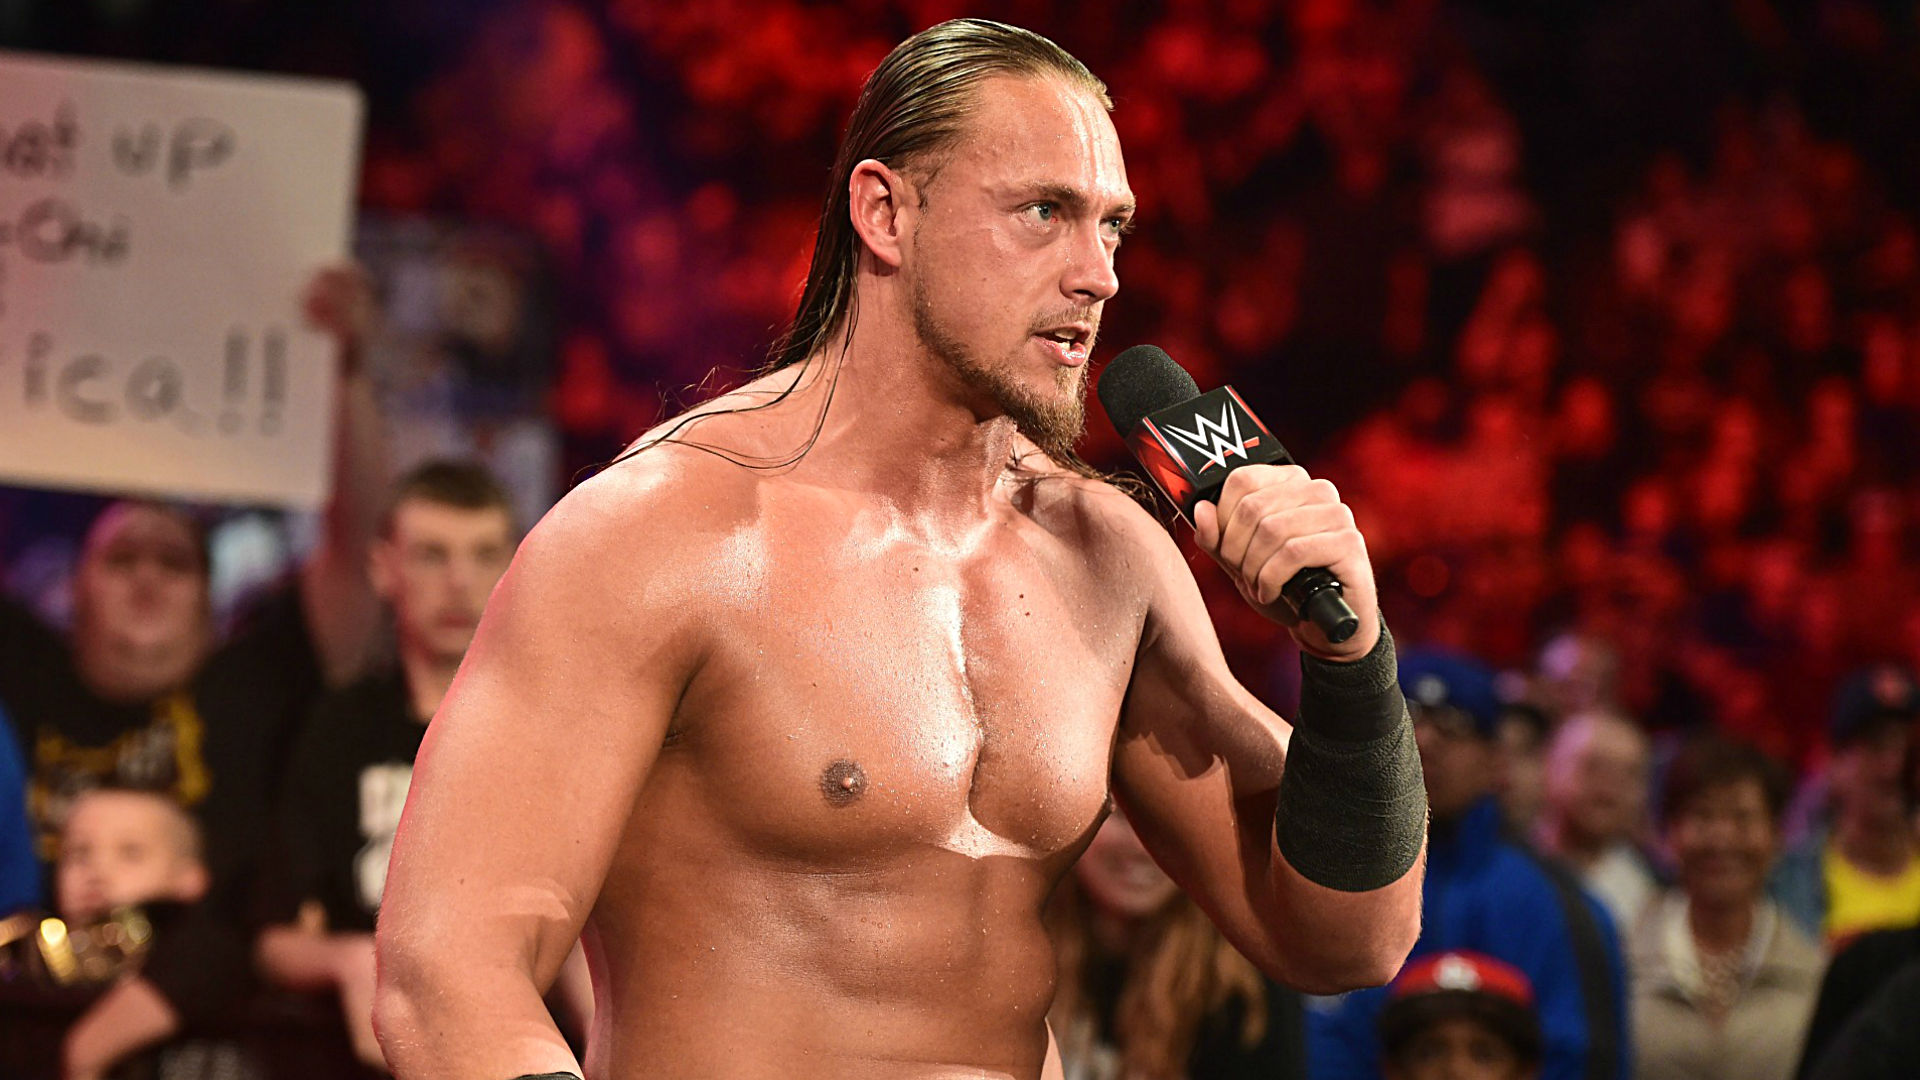 More Details On Big Cass' WWE Release